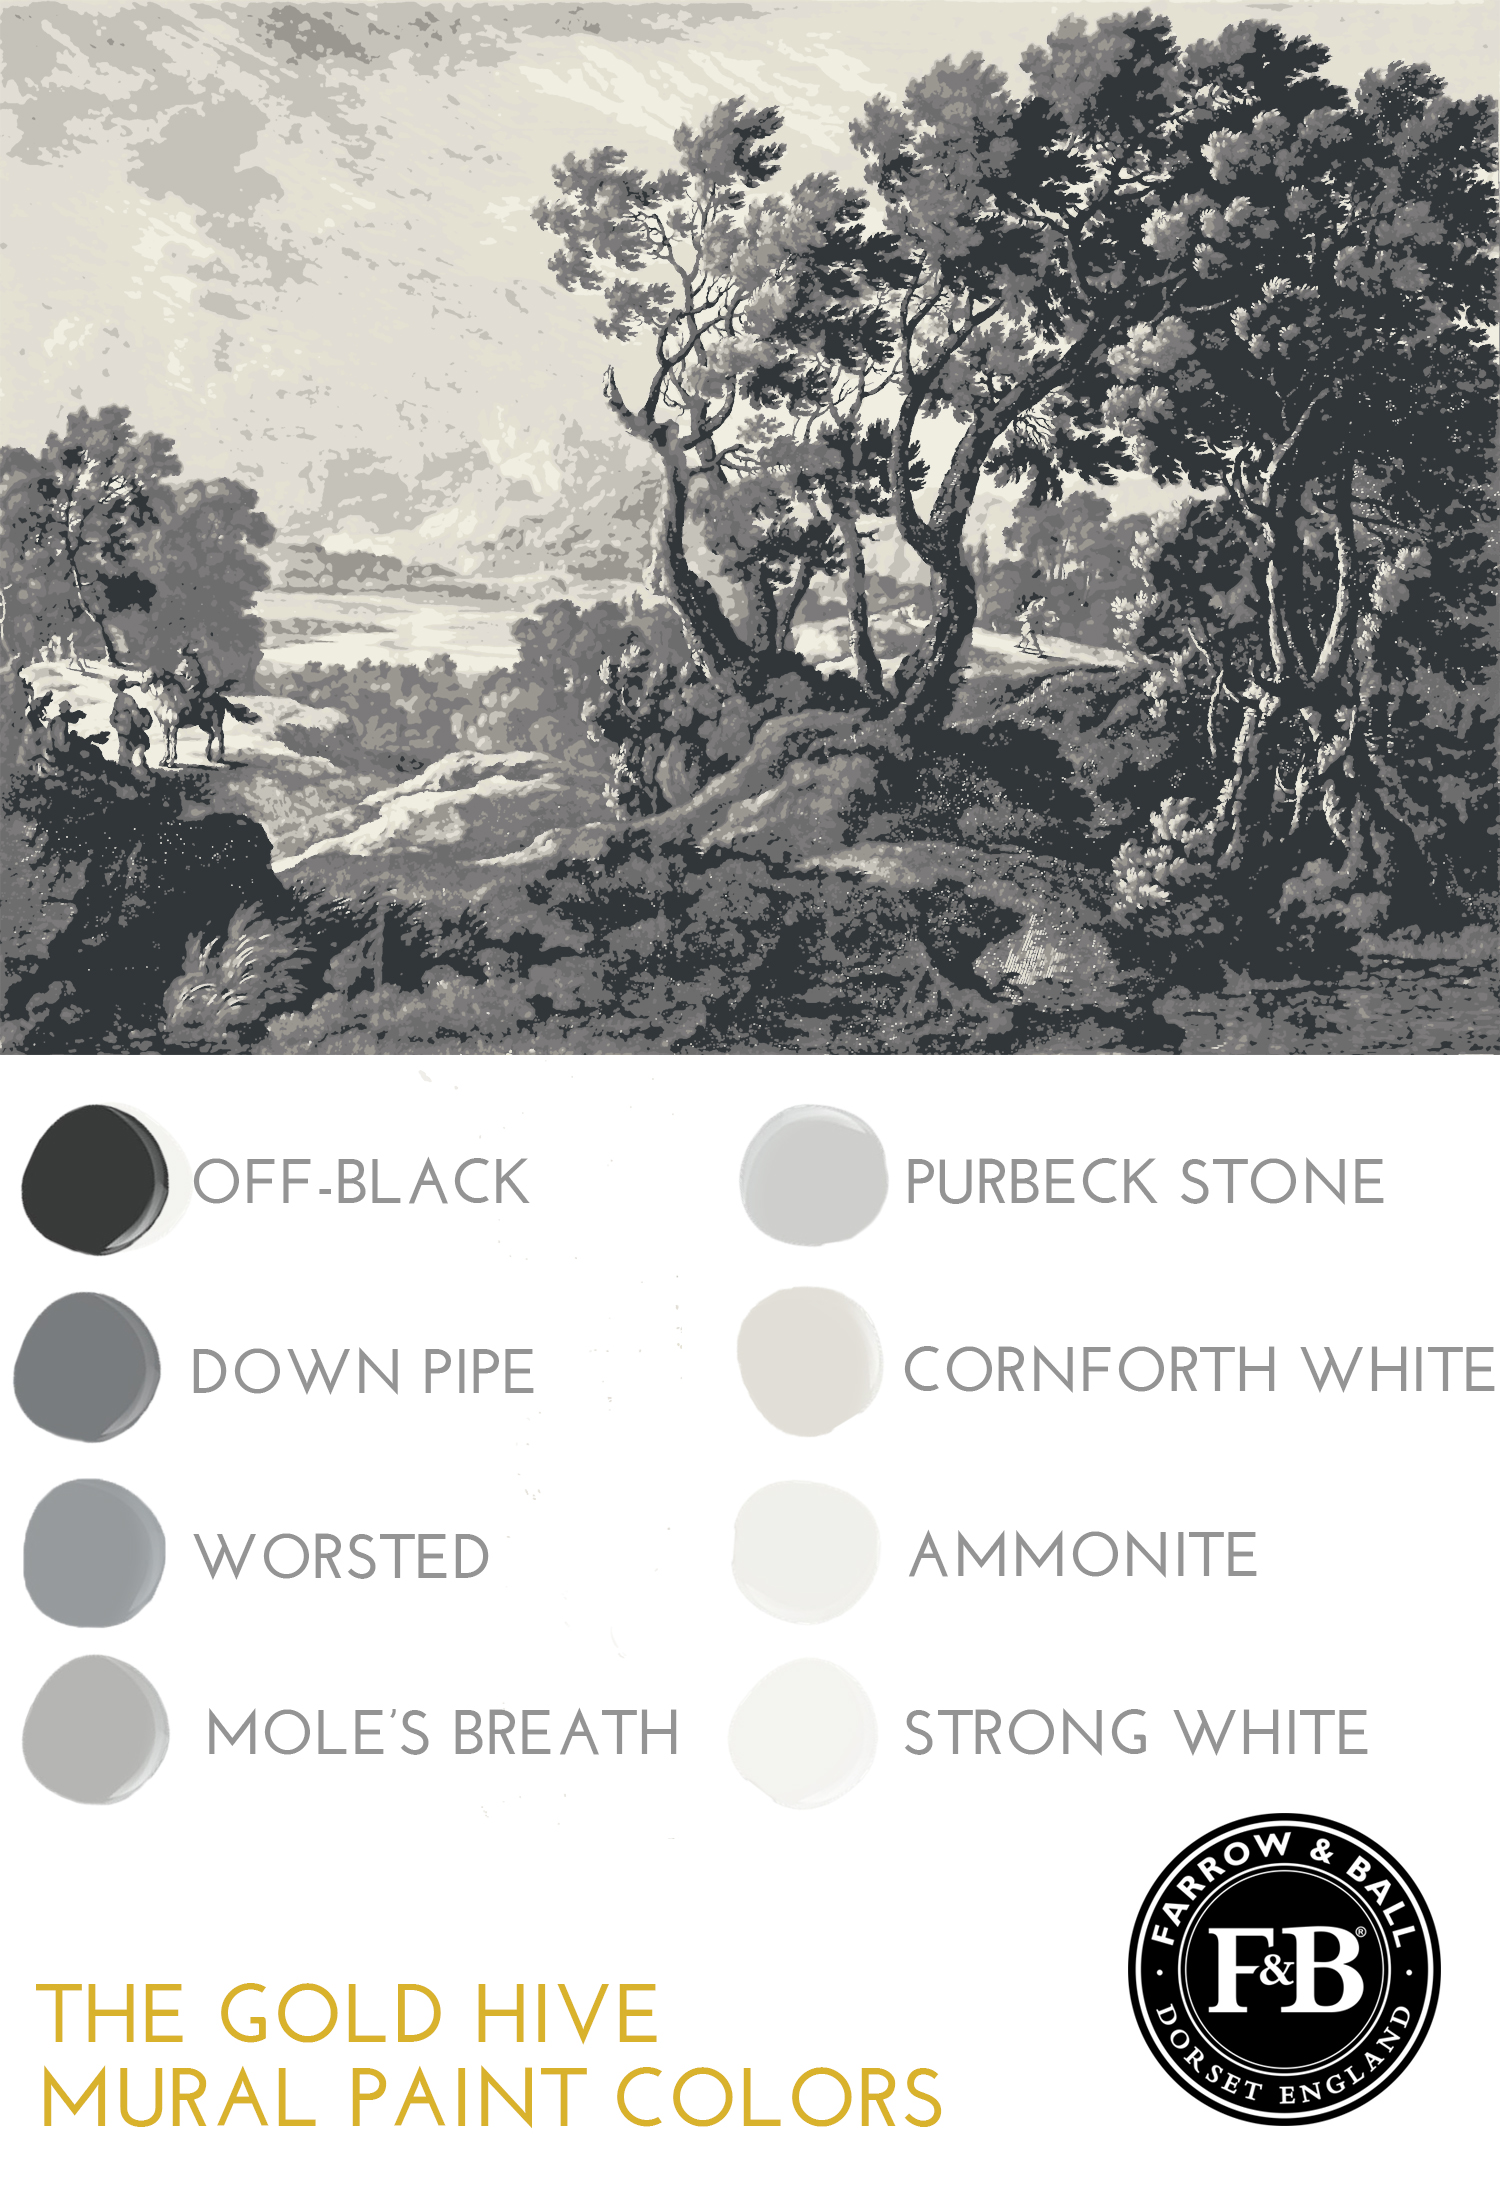 Farrow & Ball grey paint colors for mural off-black down pipe worsted mole's breath purbeck stone corn forth white ammonite strong white